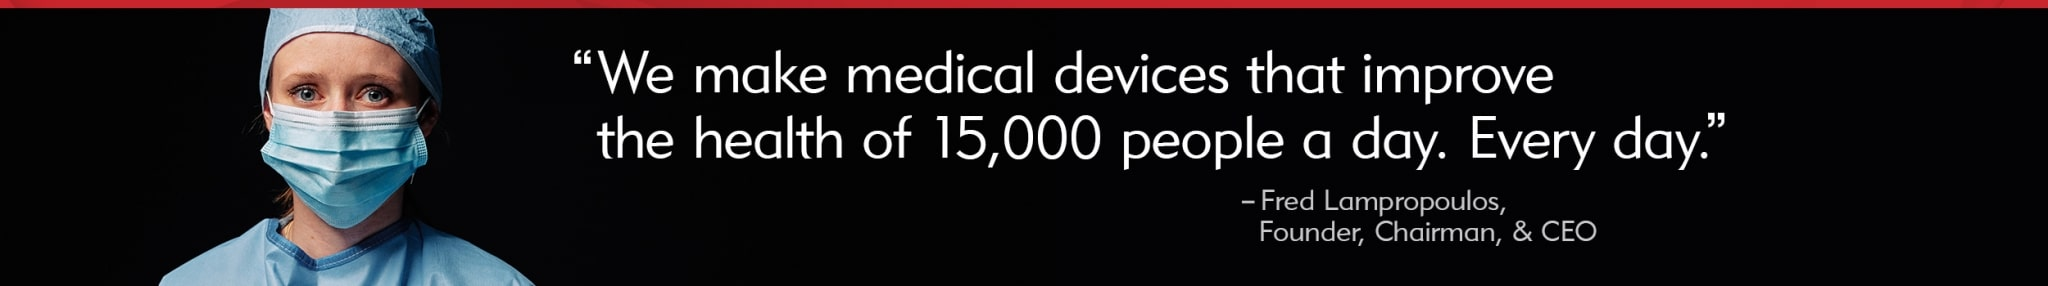 Merit Medical - We Improve Lives of 15000 People Every Day